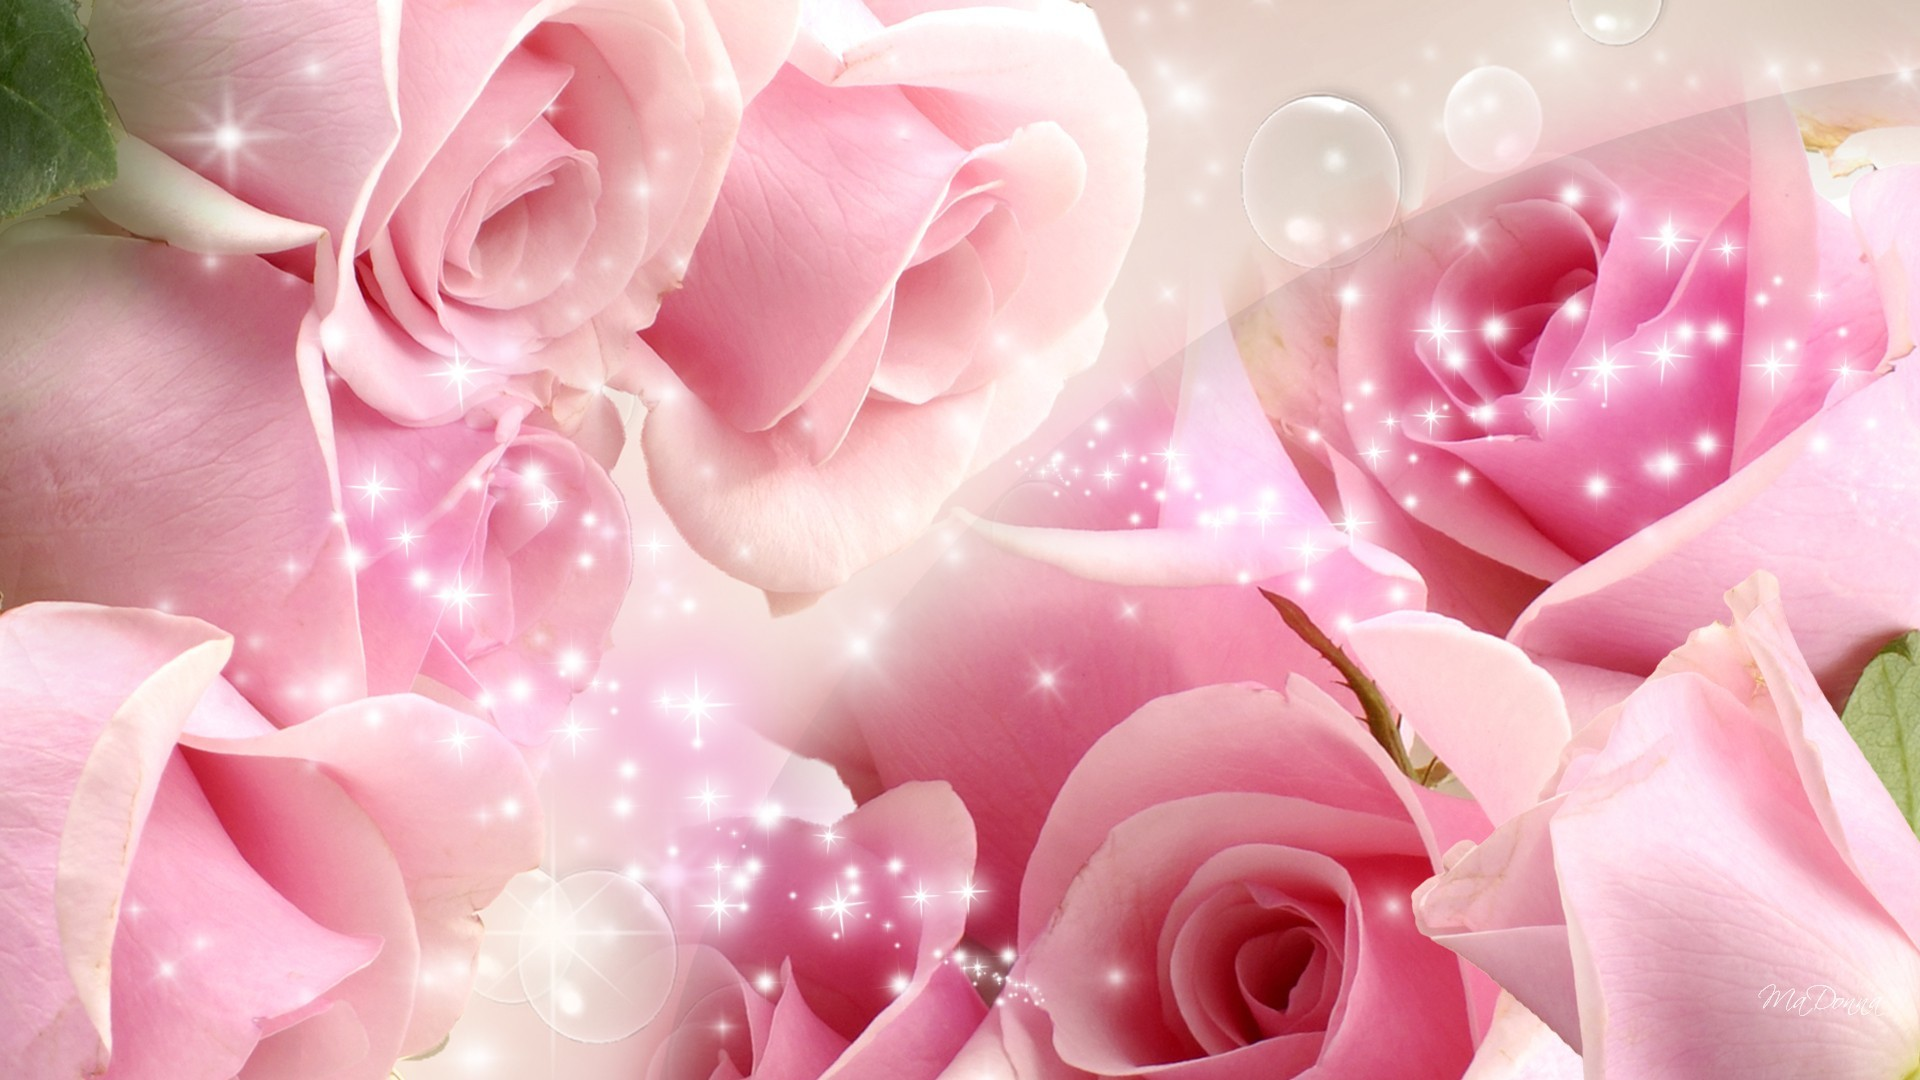 Pink roses background 34 images - Pink rose black background wallpaper ...